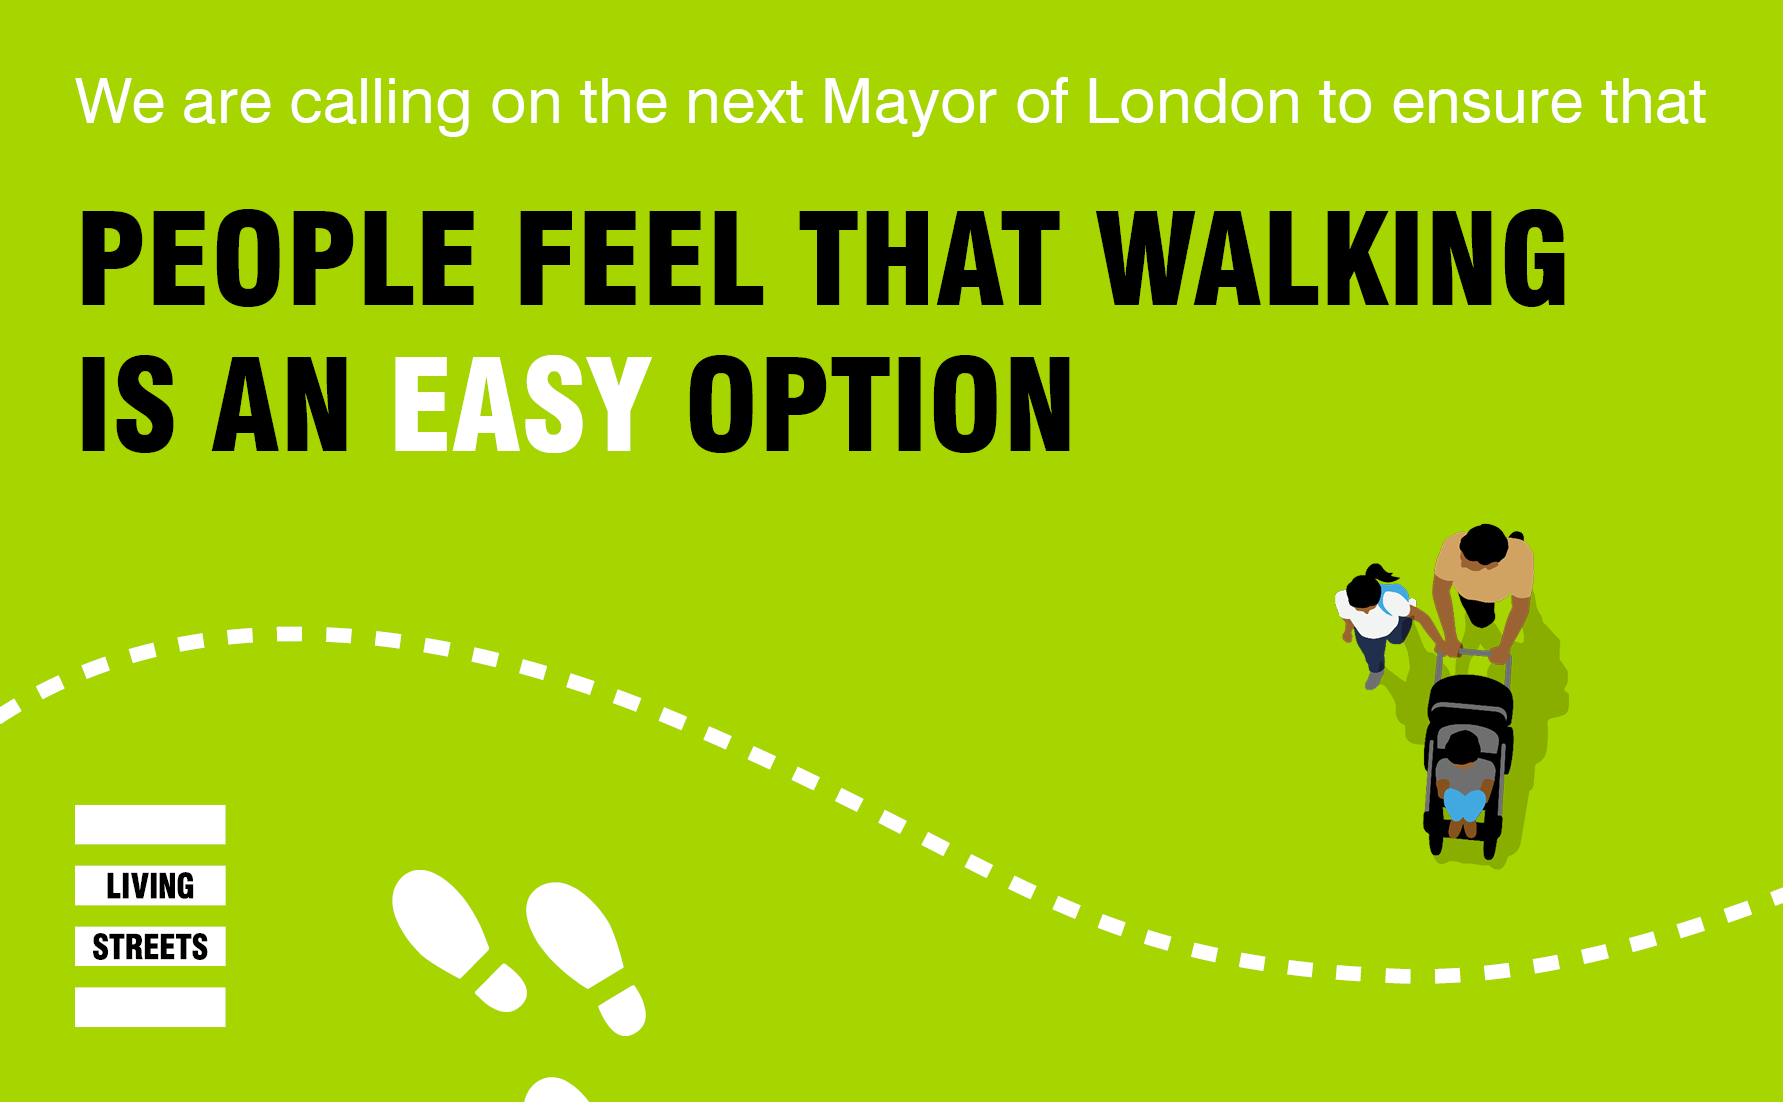 People feel that walking is an easy option